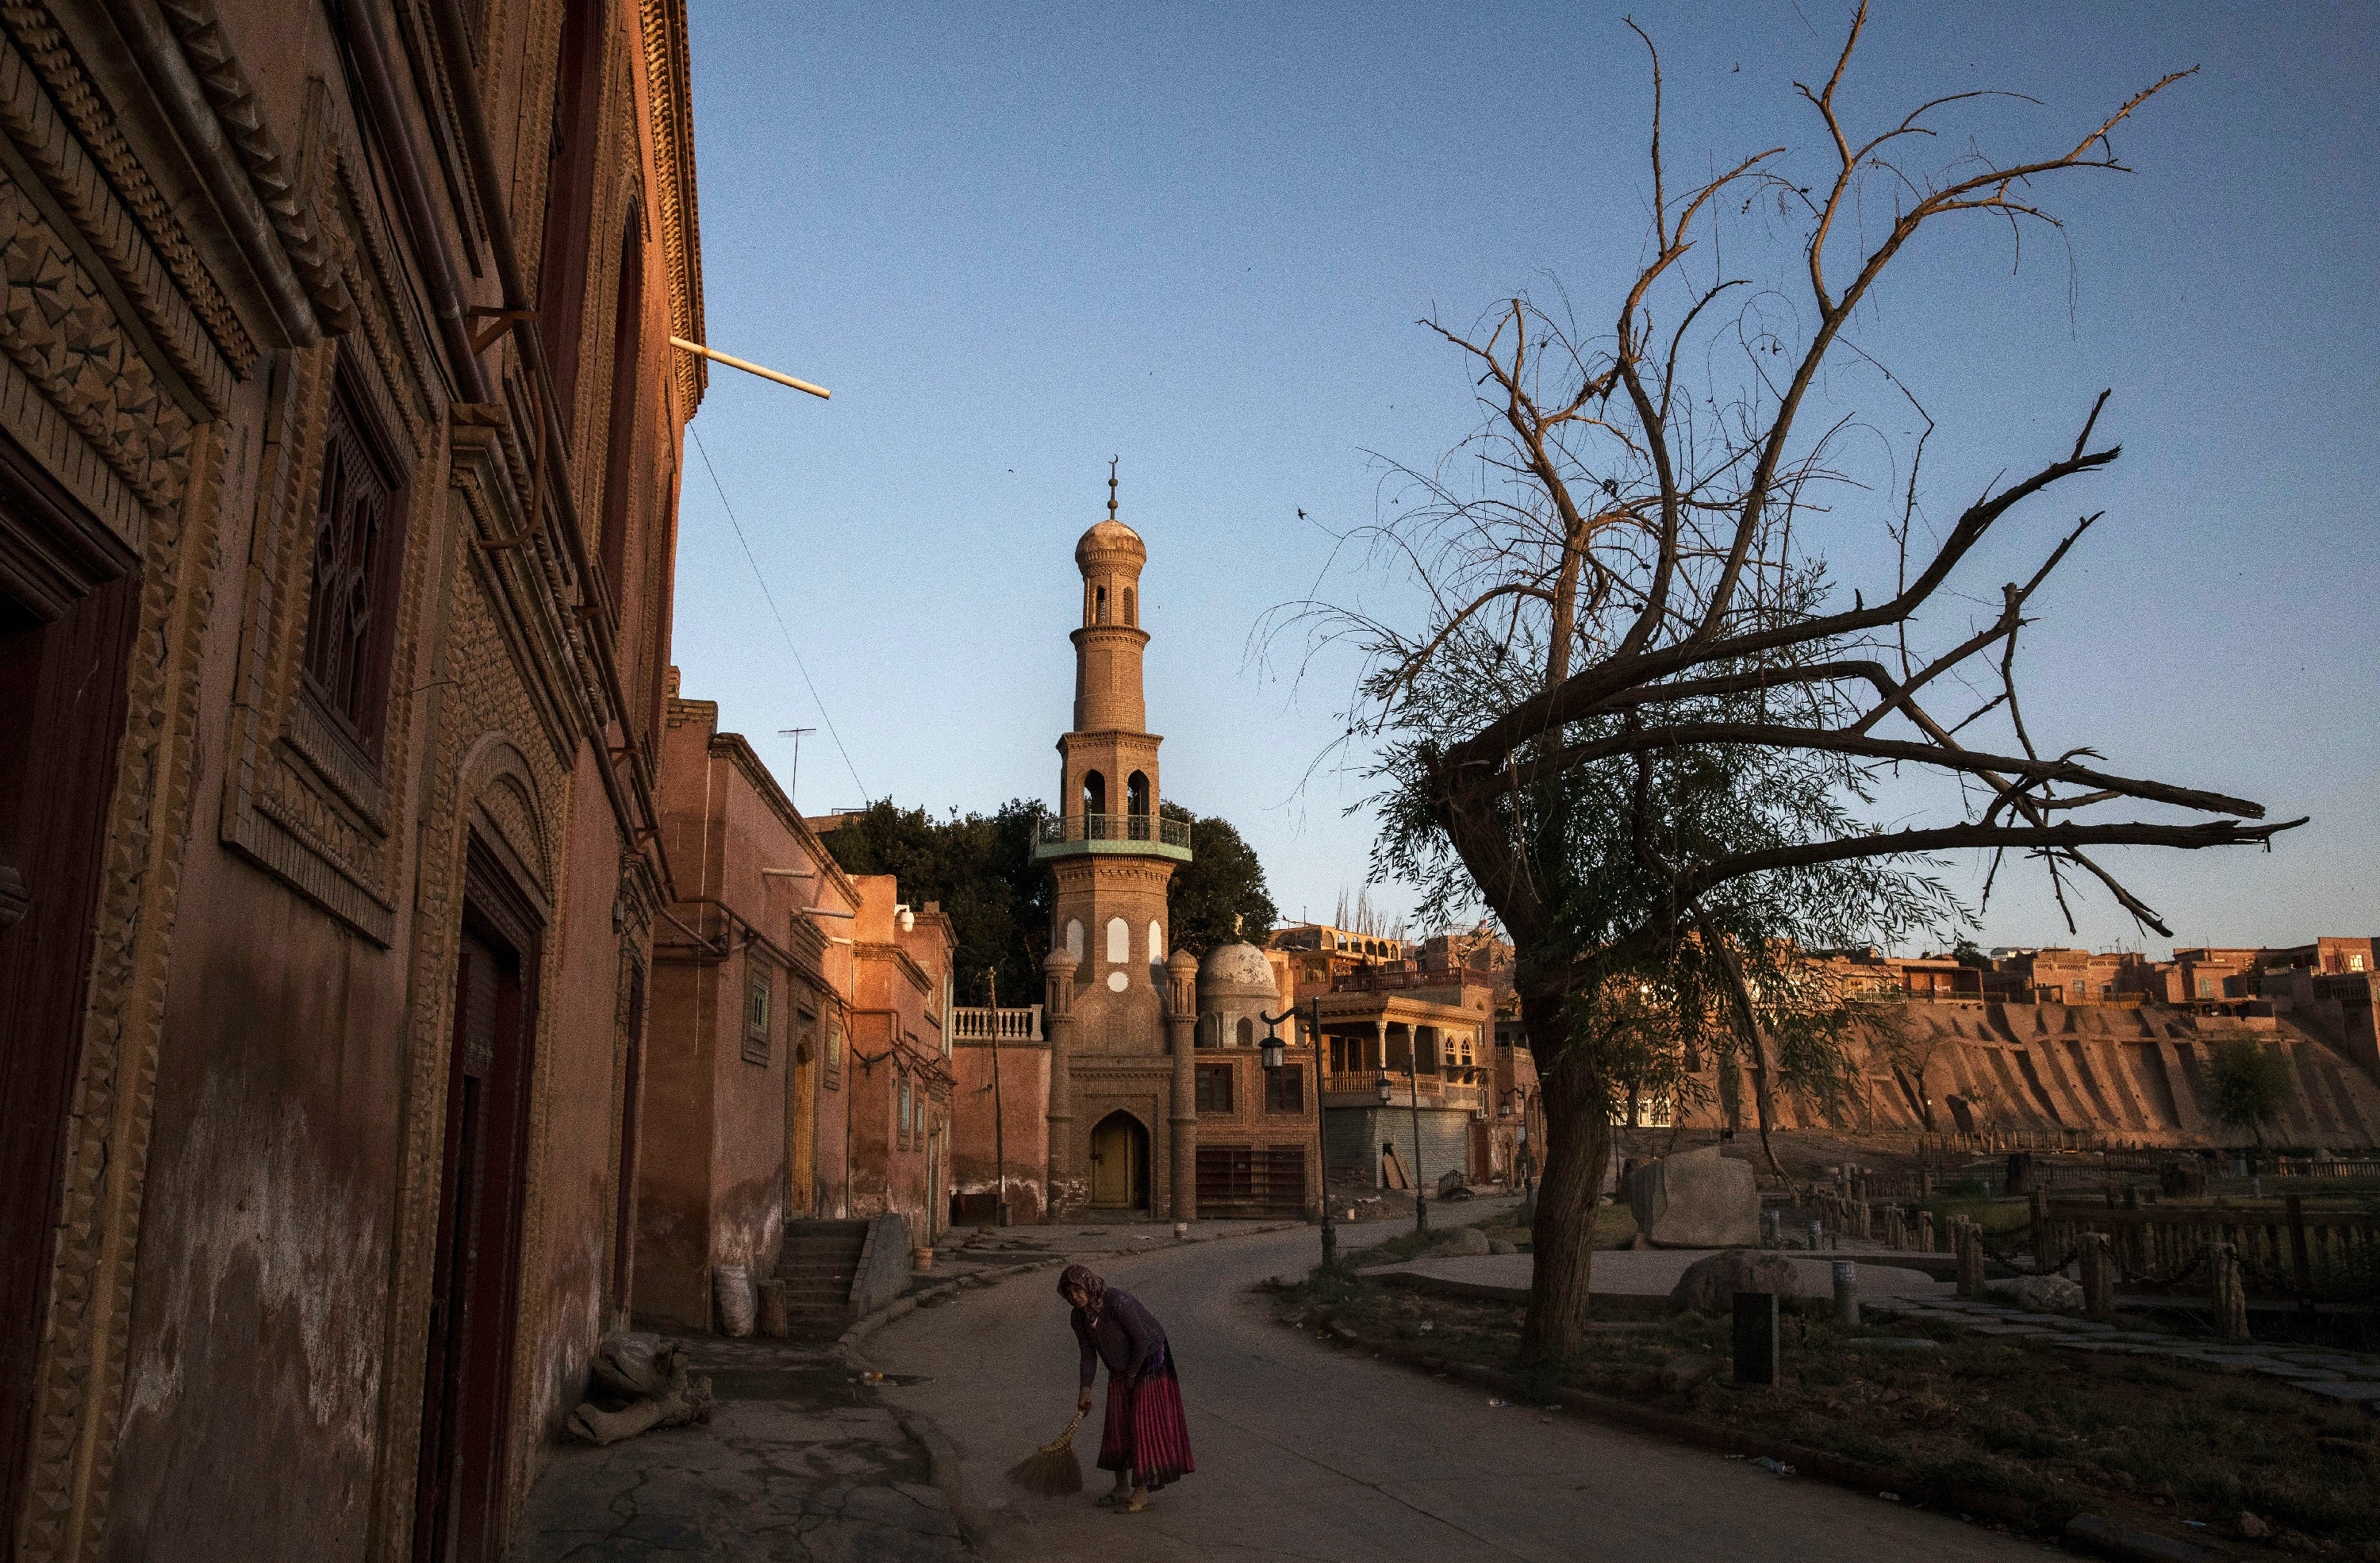 KASHGAR, CHINA - JULY 1: A ethnic Uyghur woman sweeps outside her house on July 1, 2017 in the old town of Kashgar, in the far western Xinjiang province, China. Kashgar has long been considered the cultural heart of Xinjiang for the province's nearly 10 million Muslim Uyghurs. At an historic crossroads linking China  to Asia, the Middle East, and Europe, the city has  changed under Chinese rule with government development, unofficial Han Chinese settlement to the western province, and restrictions imposed by the Communist Party. Beijing says it regards Kashgar's development as an improvement to the local economy, but many Uyghurs consider it a threat that is eroding their language, traditions, and cultural identity.  The friction has fuelled a separatist movement that has sometimes turned violent, triggering a crackdown on what China's government considers 'terrorist acts' by religious extremists.  Tension has increased with stepped up security in the city and the enforcement of measures including restrictions at mosques. (Photo by Kevin Frayer/Getty Images)